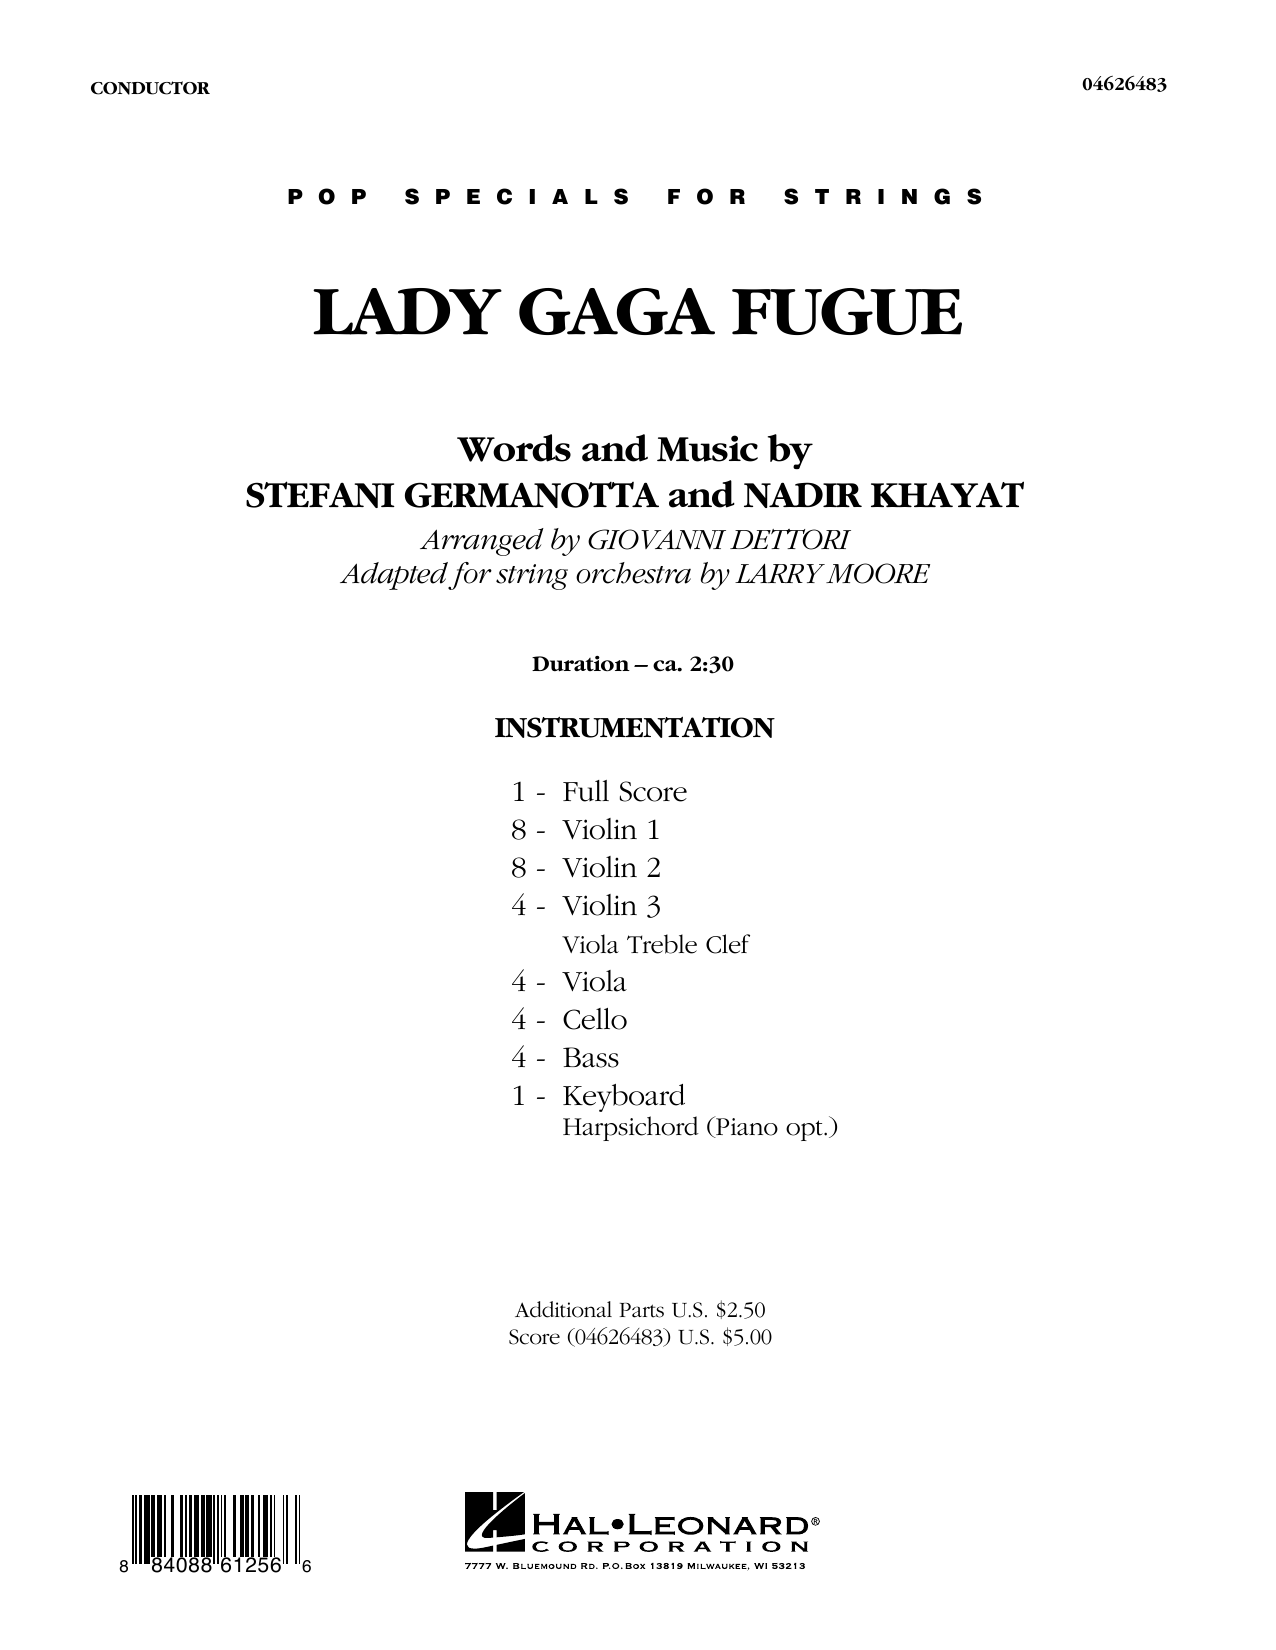 Lady Gaga Fugue (based on